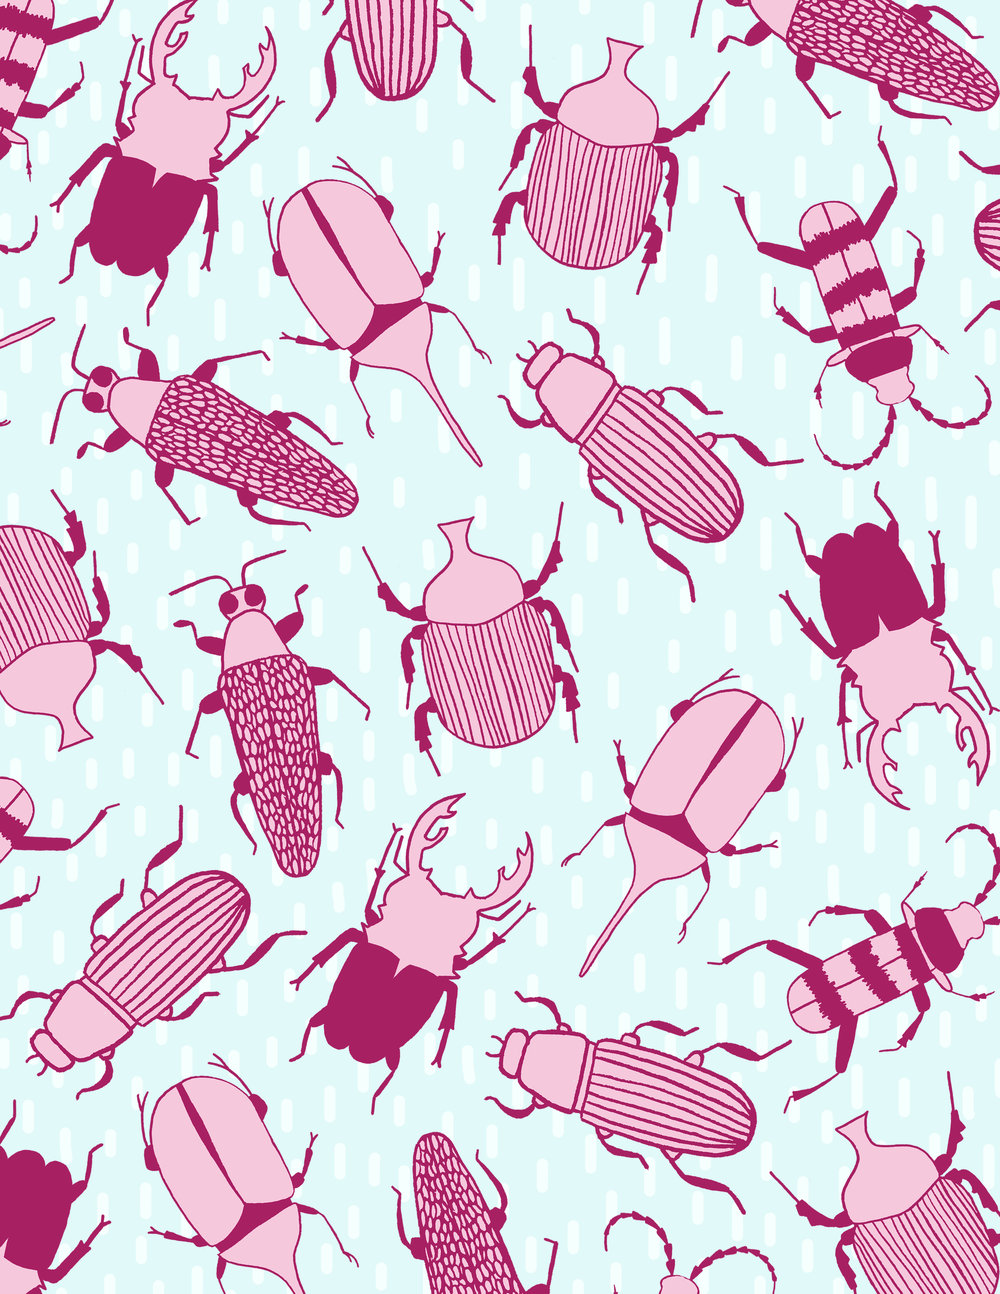 Beetles Pattern.jpg